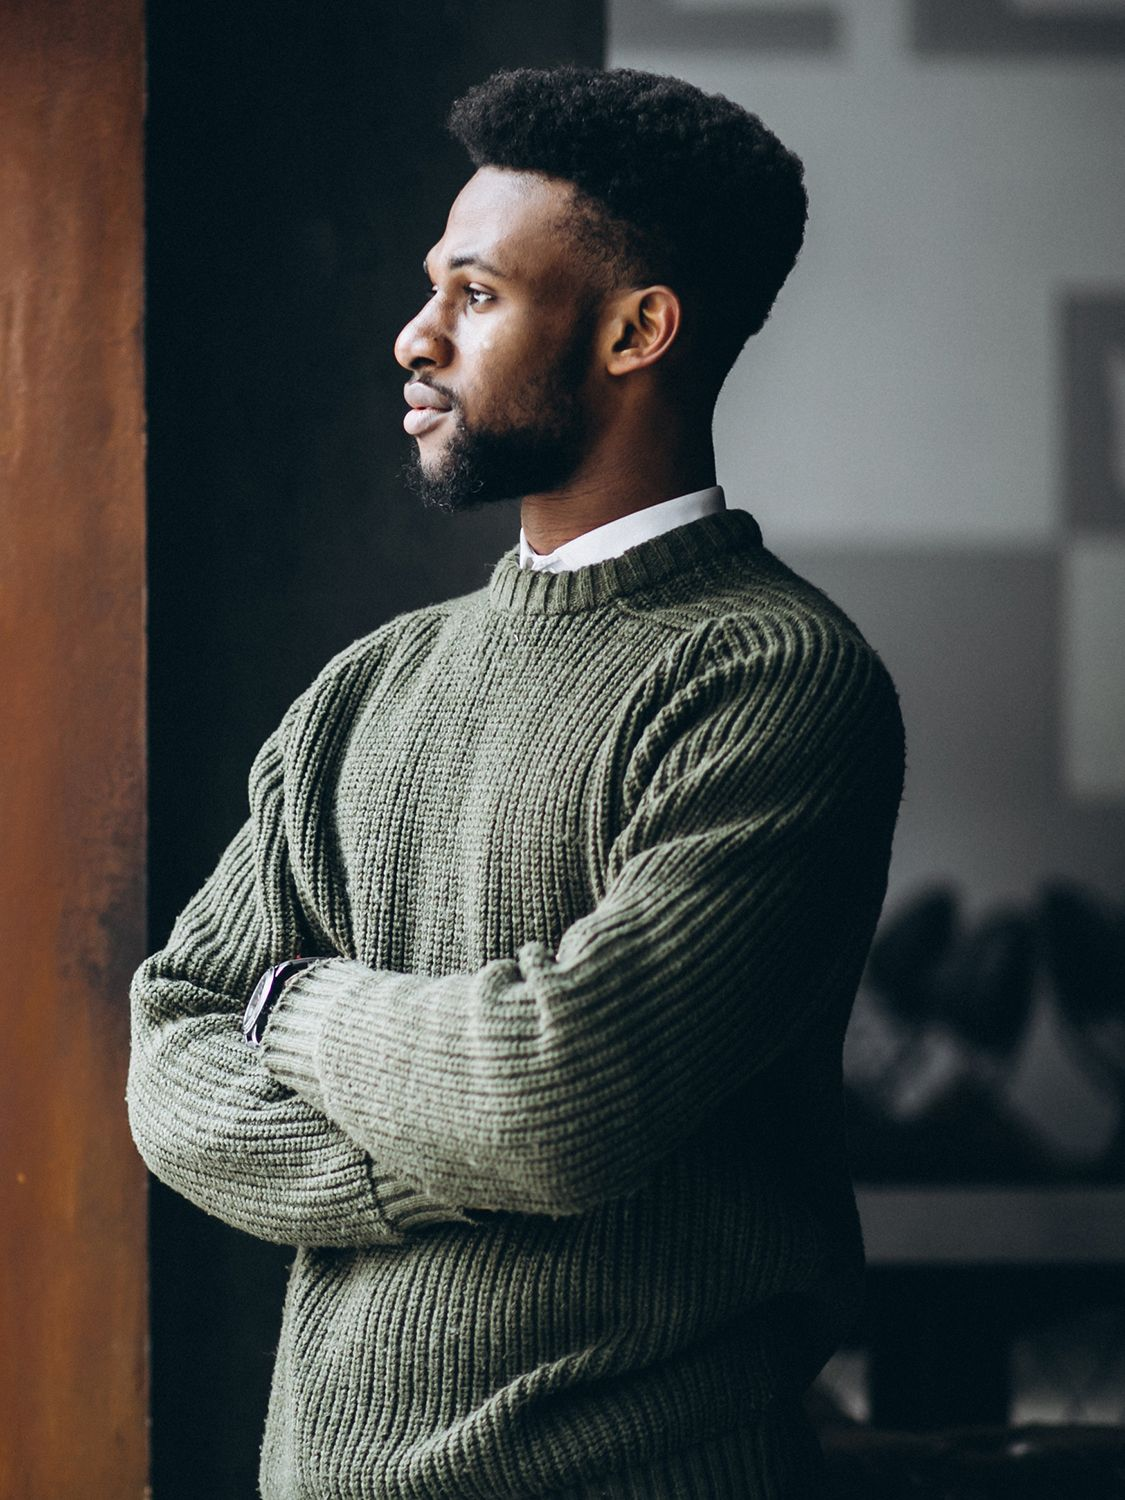 Men's outfit idea for 2021 with green plain crew neck knitted jumper, white casual shirt, navy chinos, oxford / derby shoes. Suitable for autumn and winter.